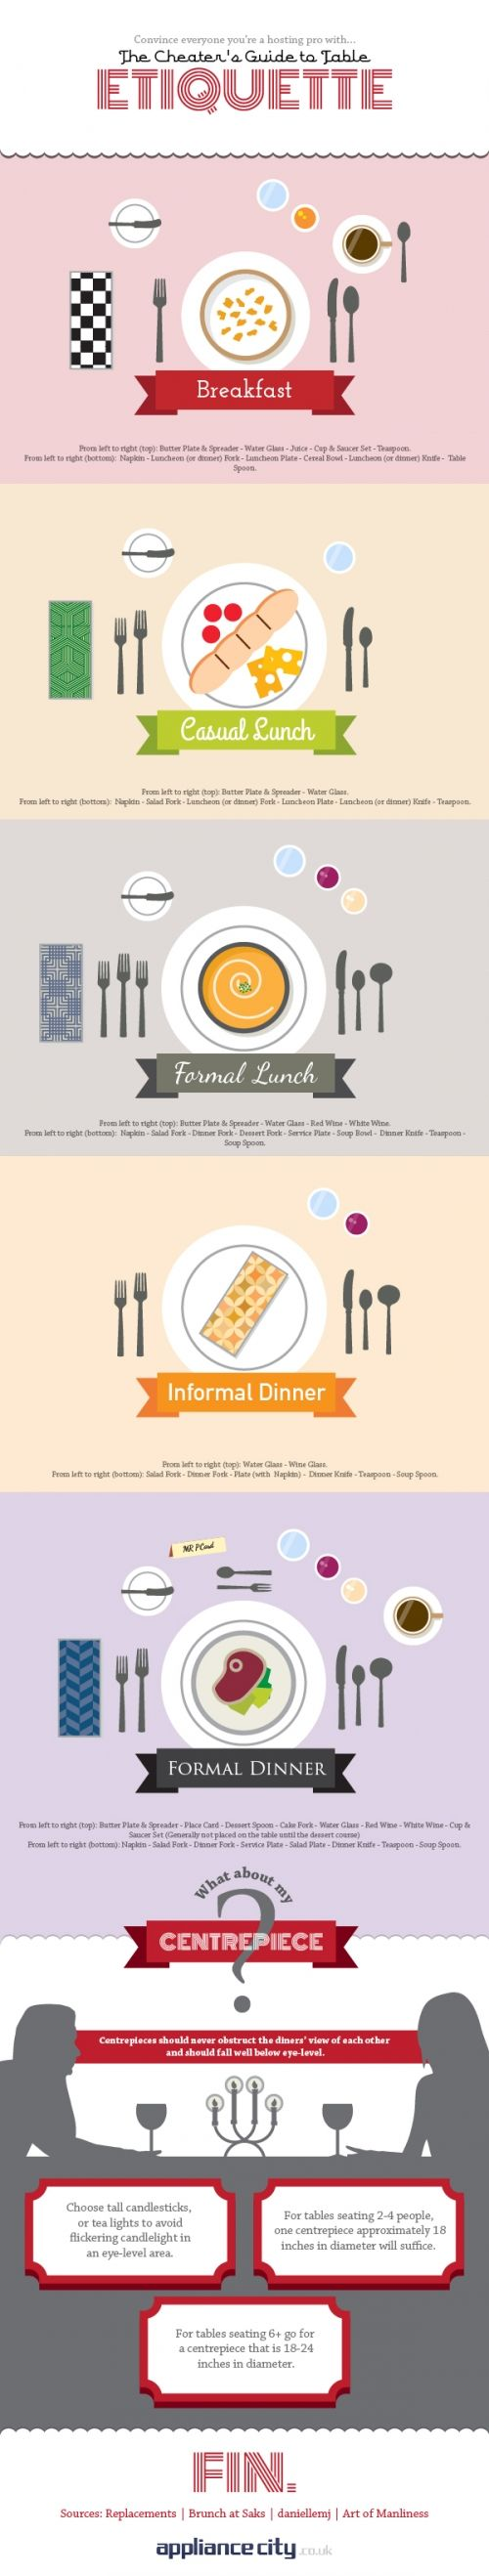 Formal dinner table setting etiquette -  Infographic The Importance Of Table Etiquette For Impressing Guests Table Setting Etiquettedining